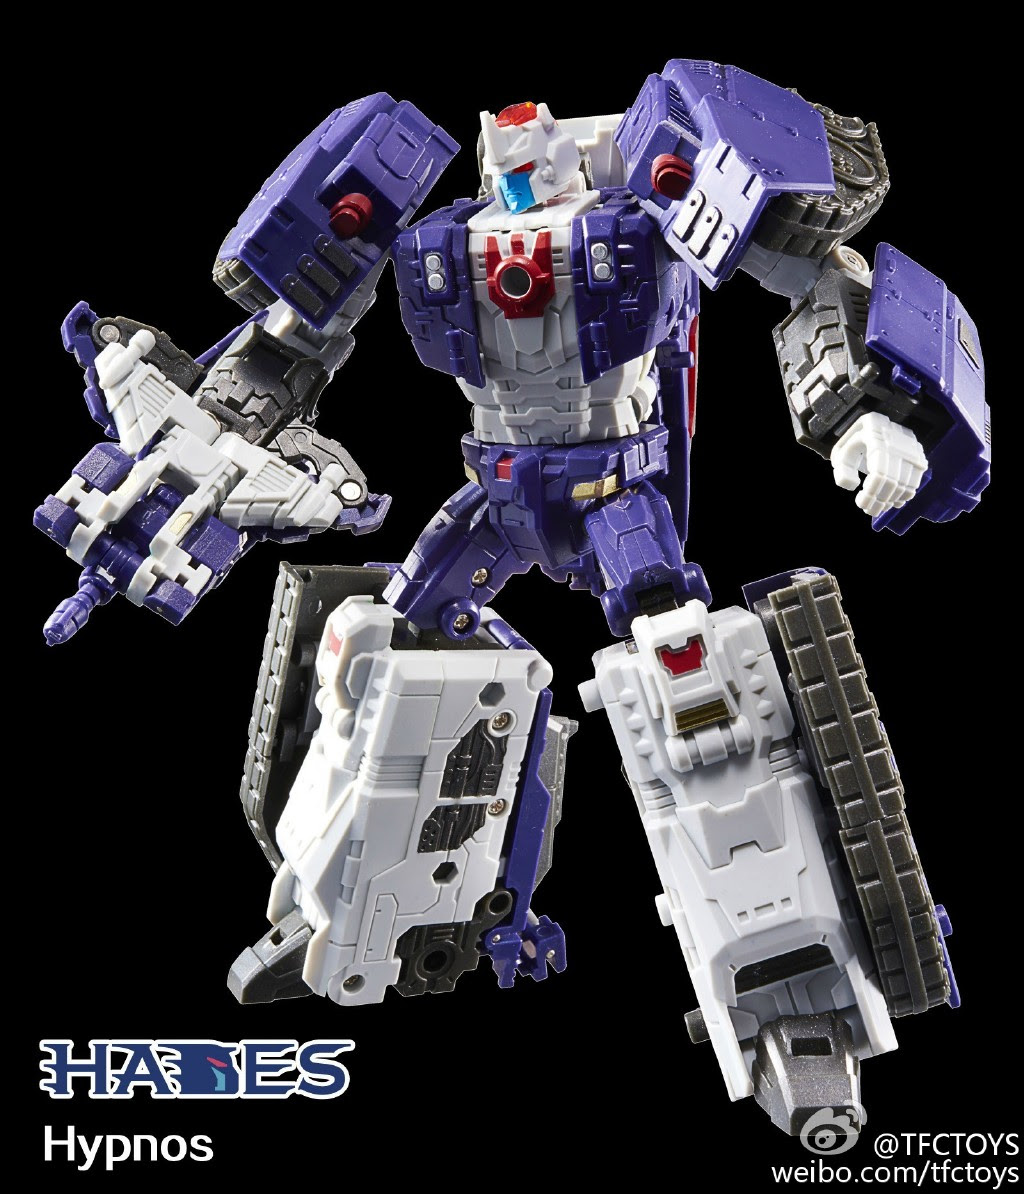 Transformers News: The Chosen Prime Newsletter for the Week of April 26 2016